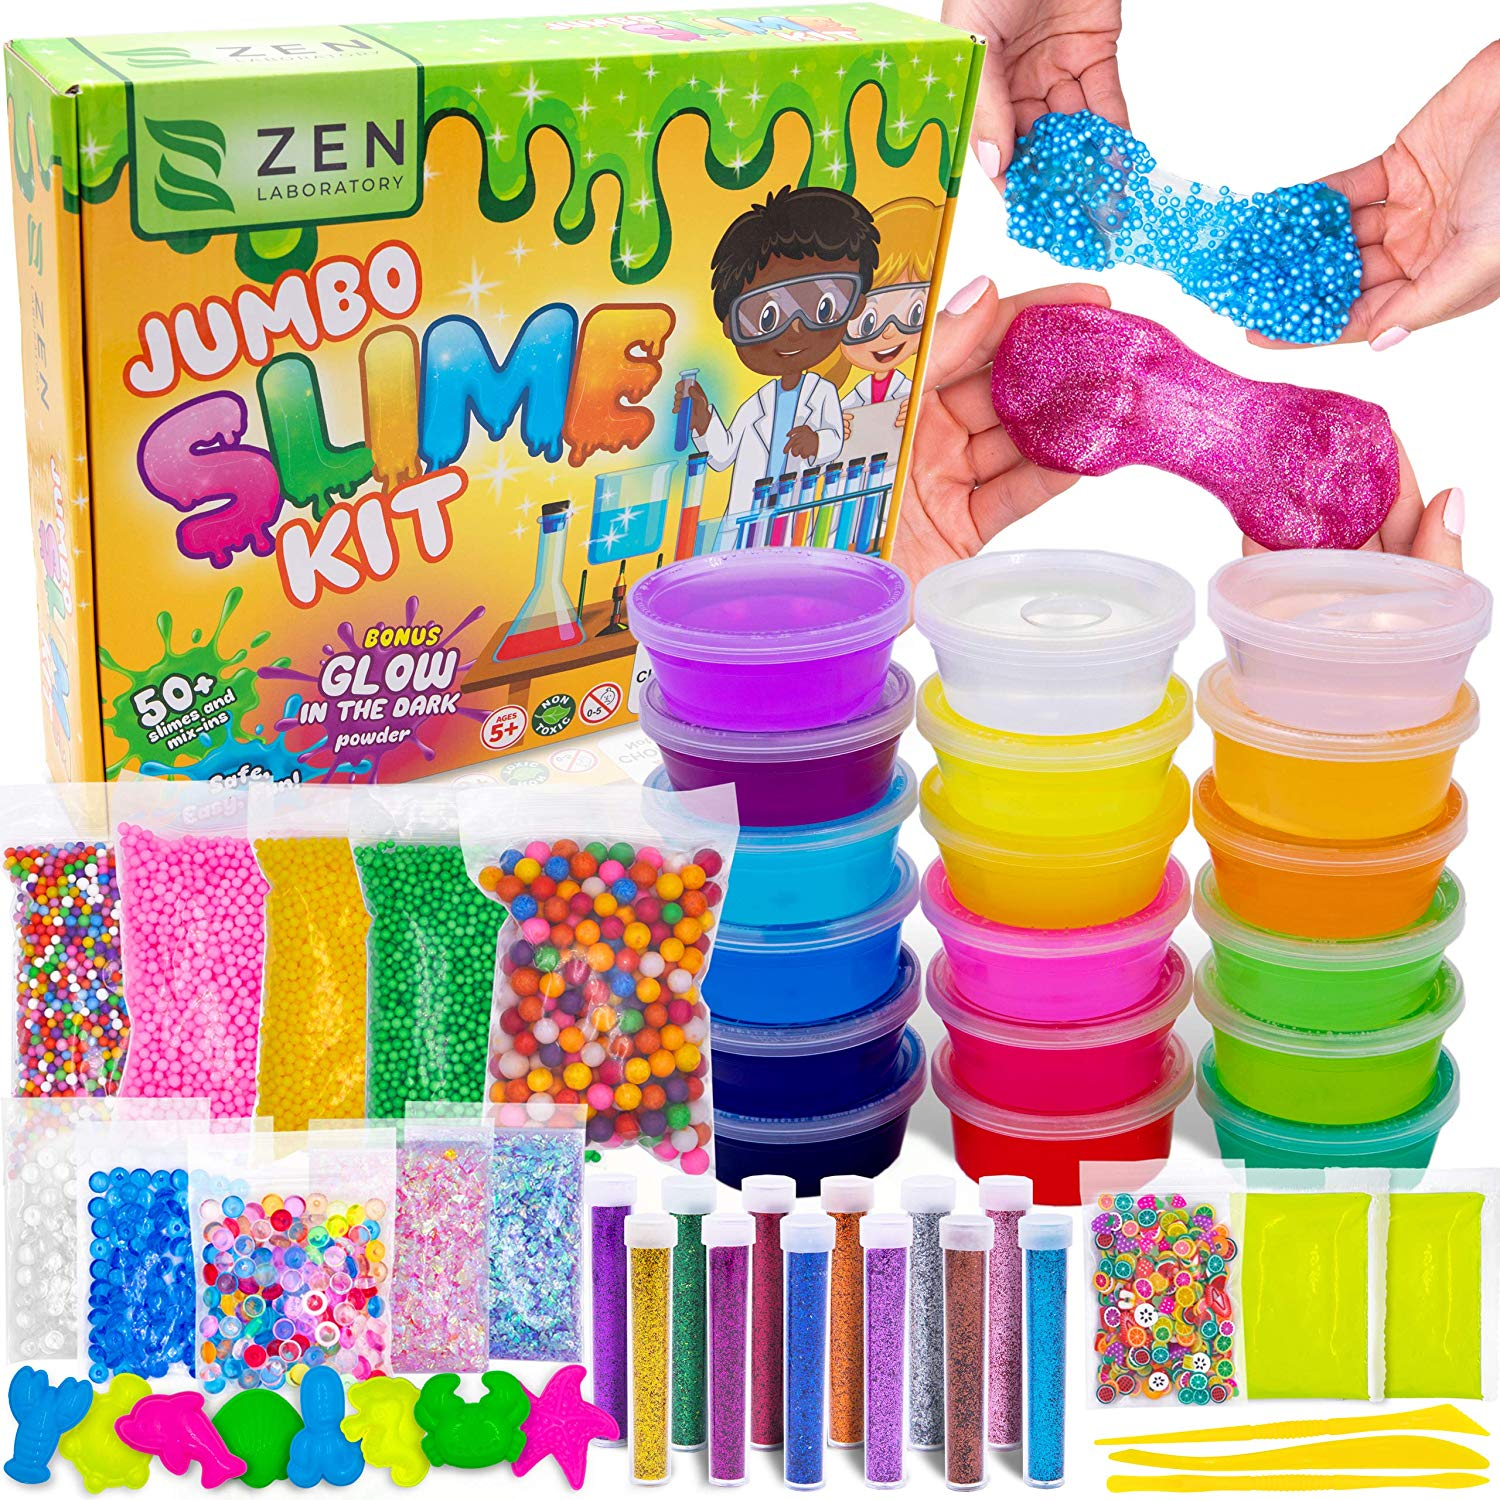 Ultimate Glow in The Dark Glitter Slime Making Kit Only $19.95 (Was $59.99)